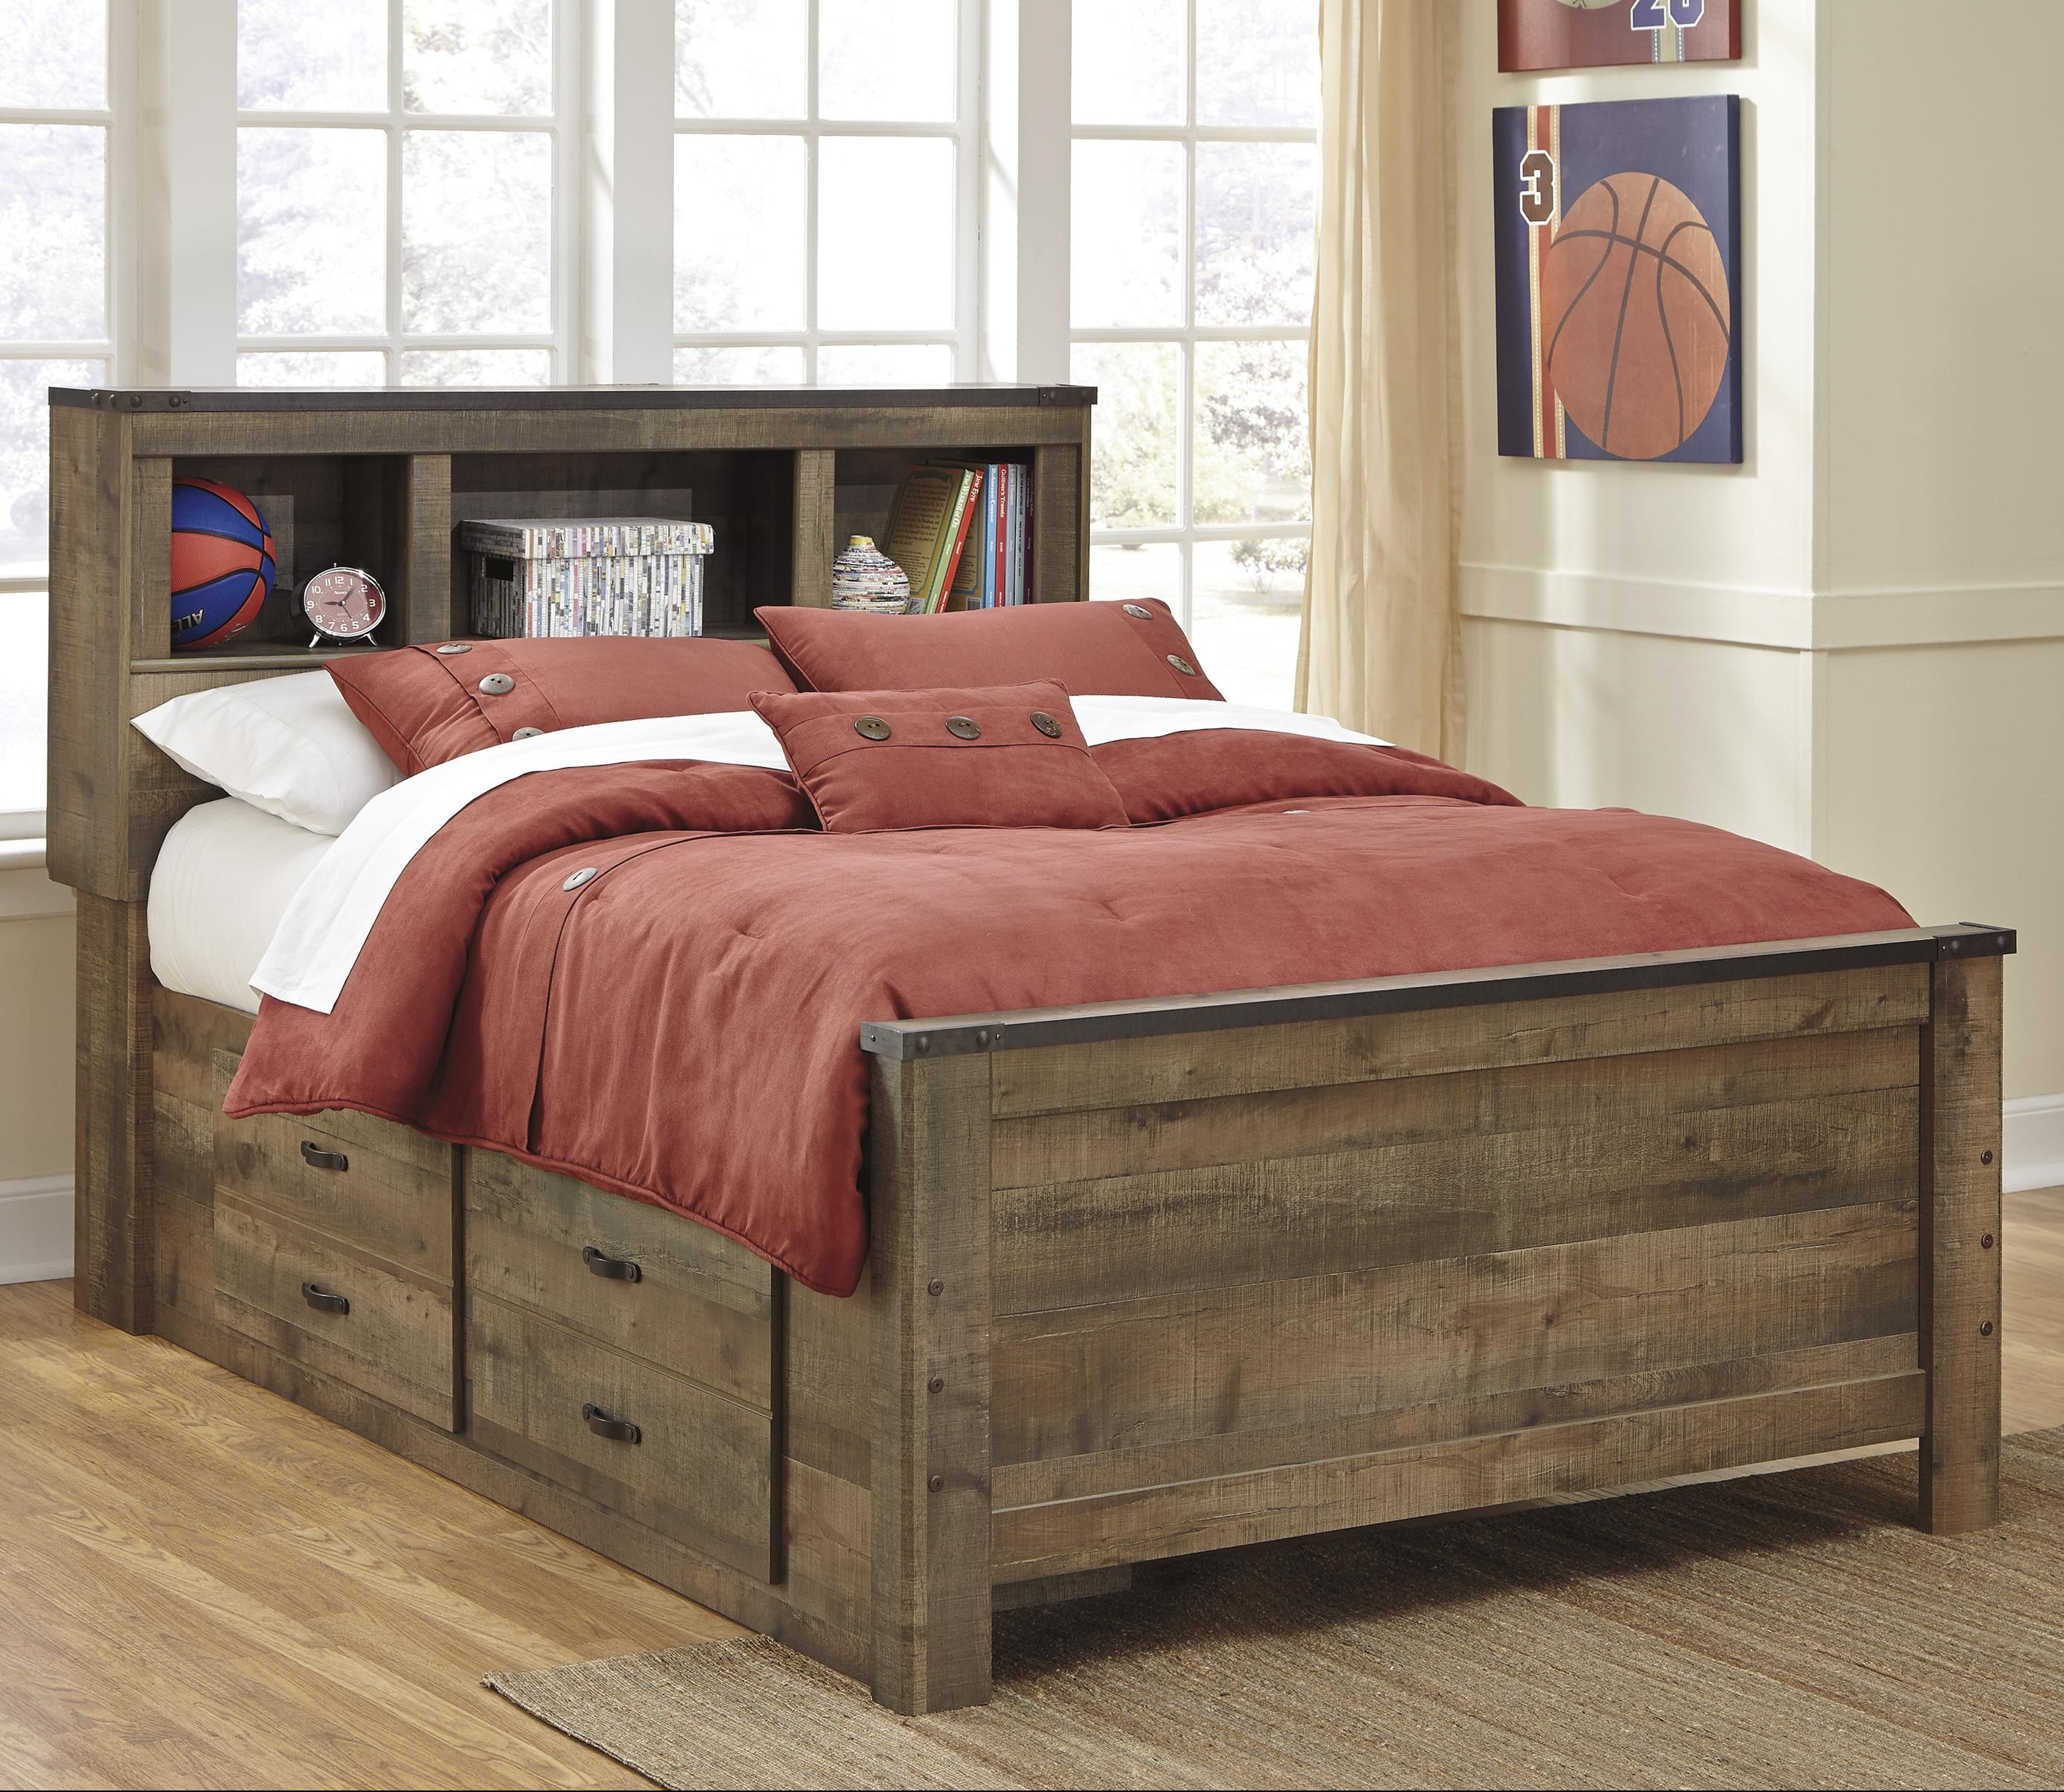 Signature Design By Ashley Trinell Rustic Look Full Bookcase Bed With Under Bed Storage Wayside Furniture Bookcase Beds